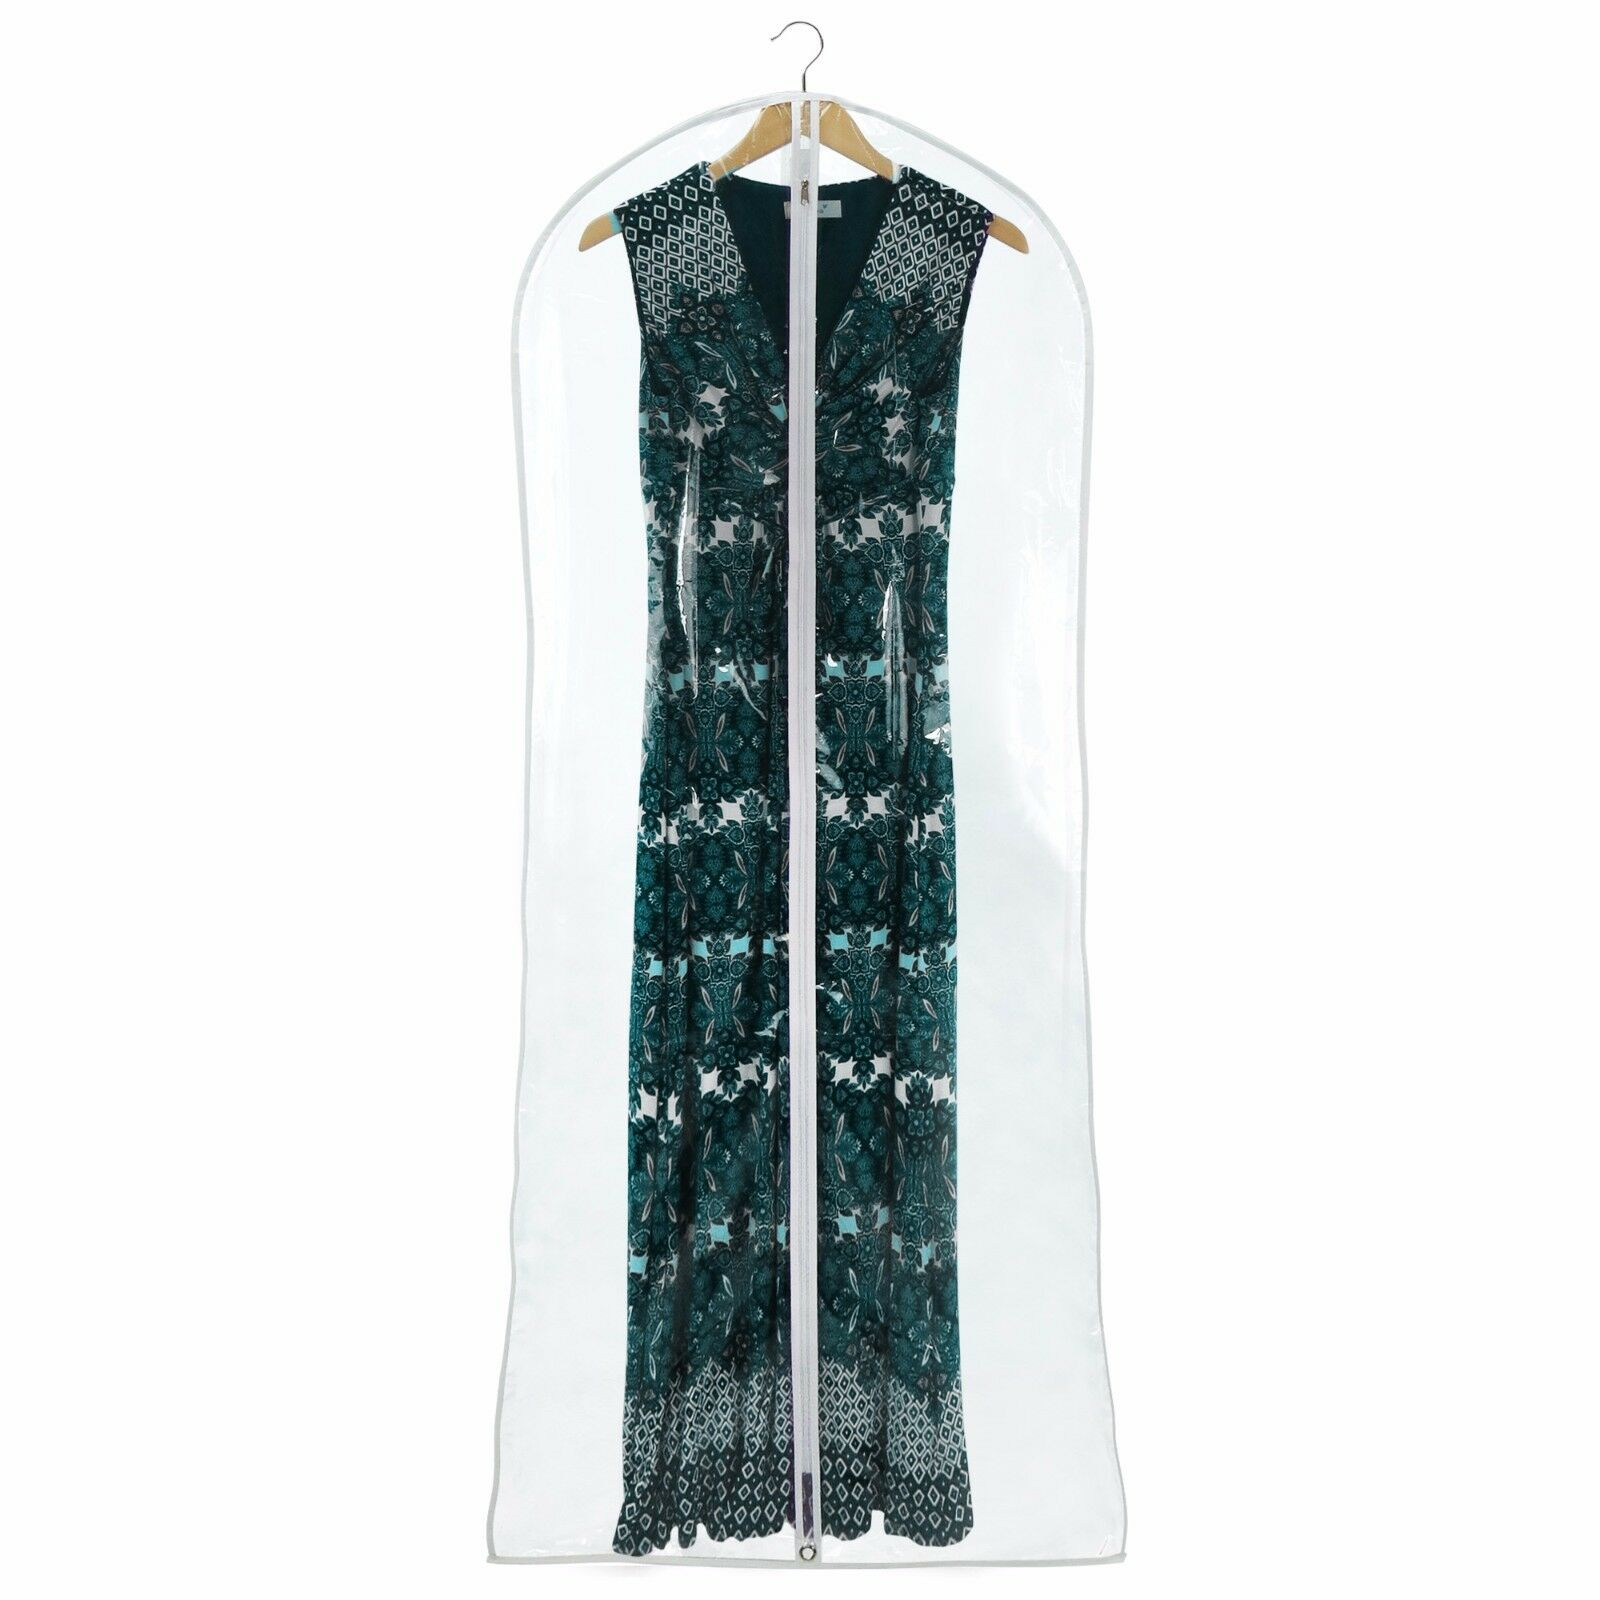 Hangerworld™ 72  Clear Showerproof Dress Covers Covers Covers Garment Clothes Protector Bags 77834f